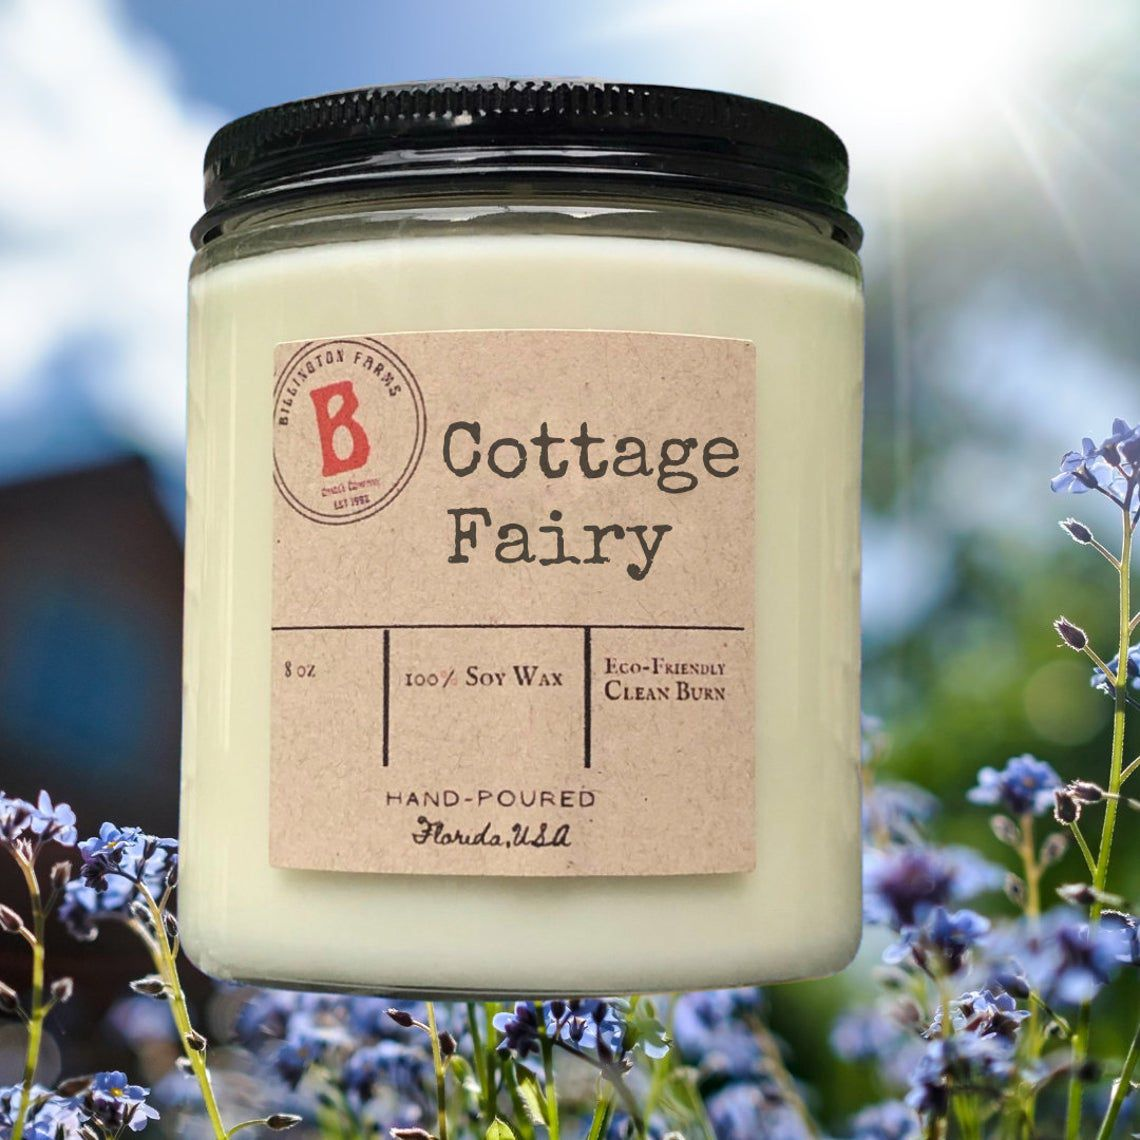 Cottage Fairy candle made by soy wax